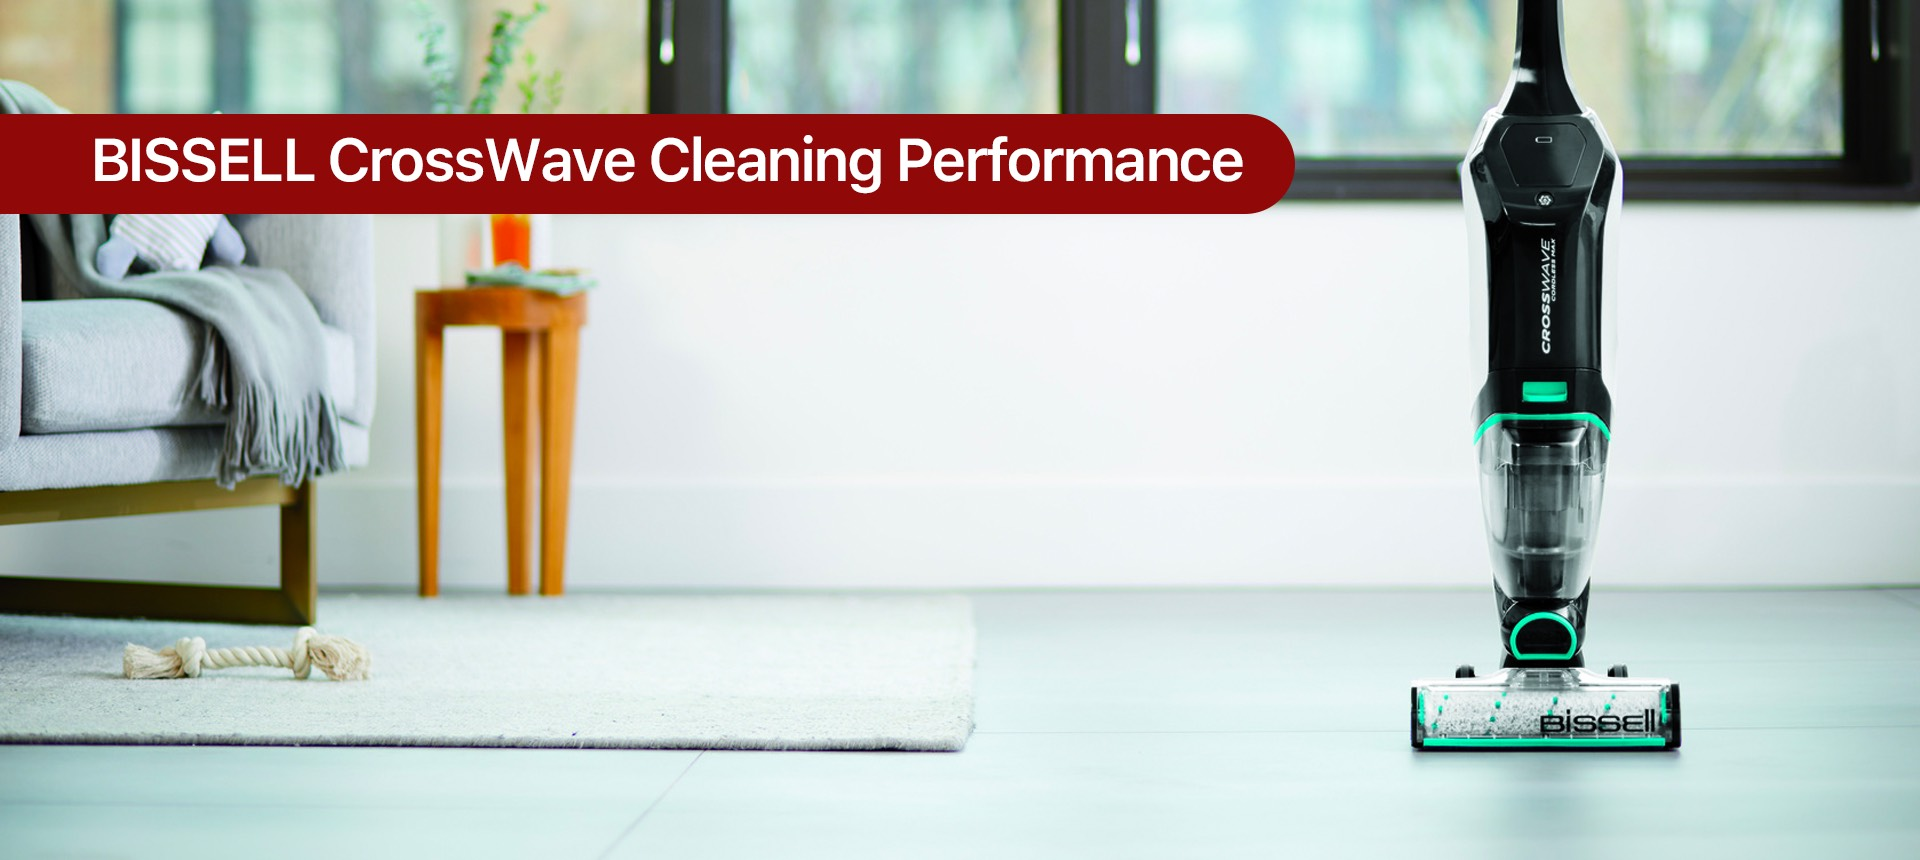 BISSELL CrossWave Cleaning Performance